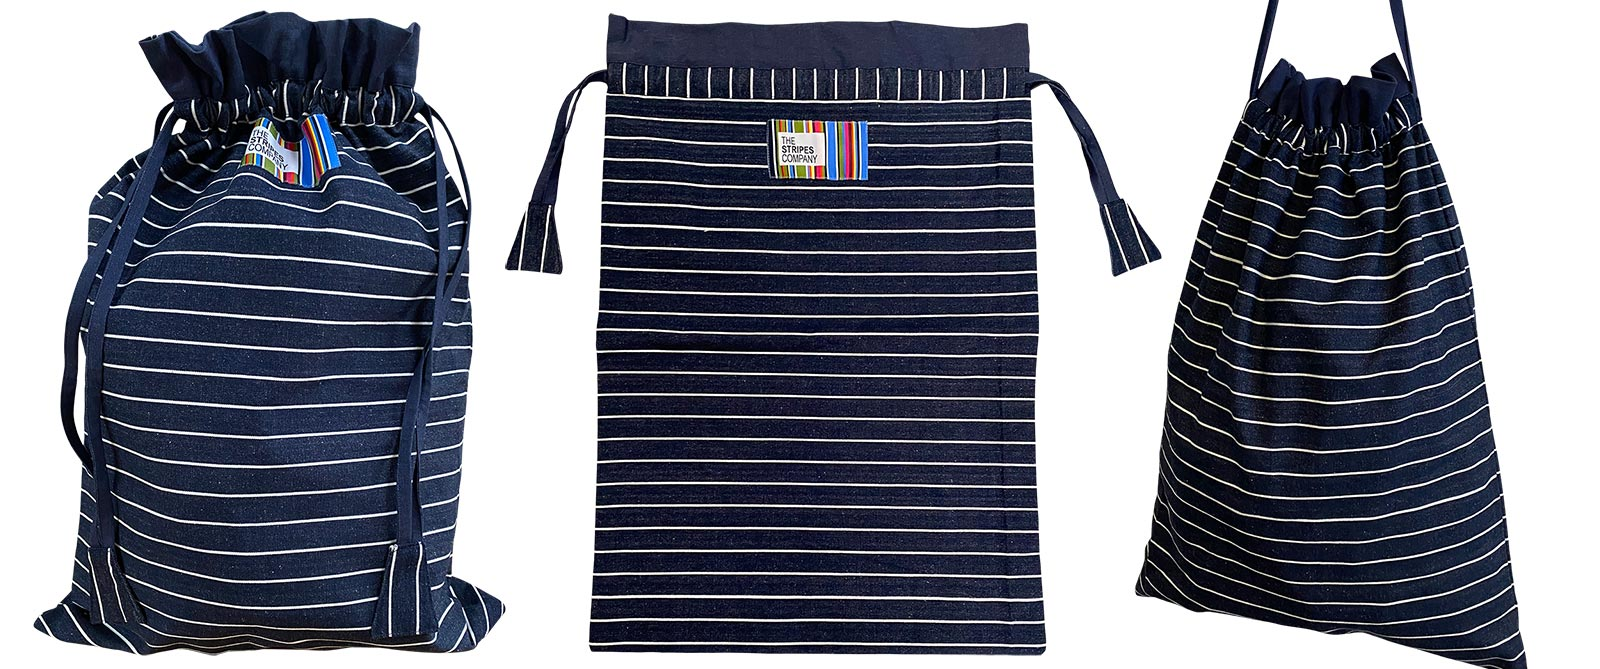 Large Striped Drawstring Bags | Laundry Bags | Kit Bags